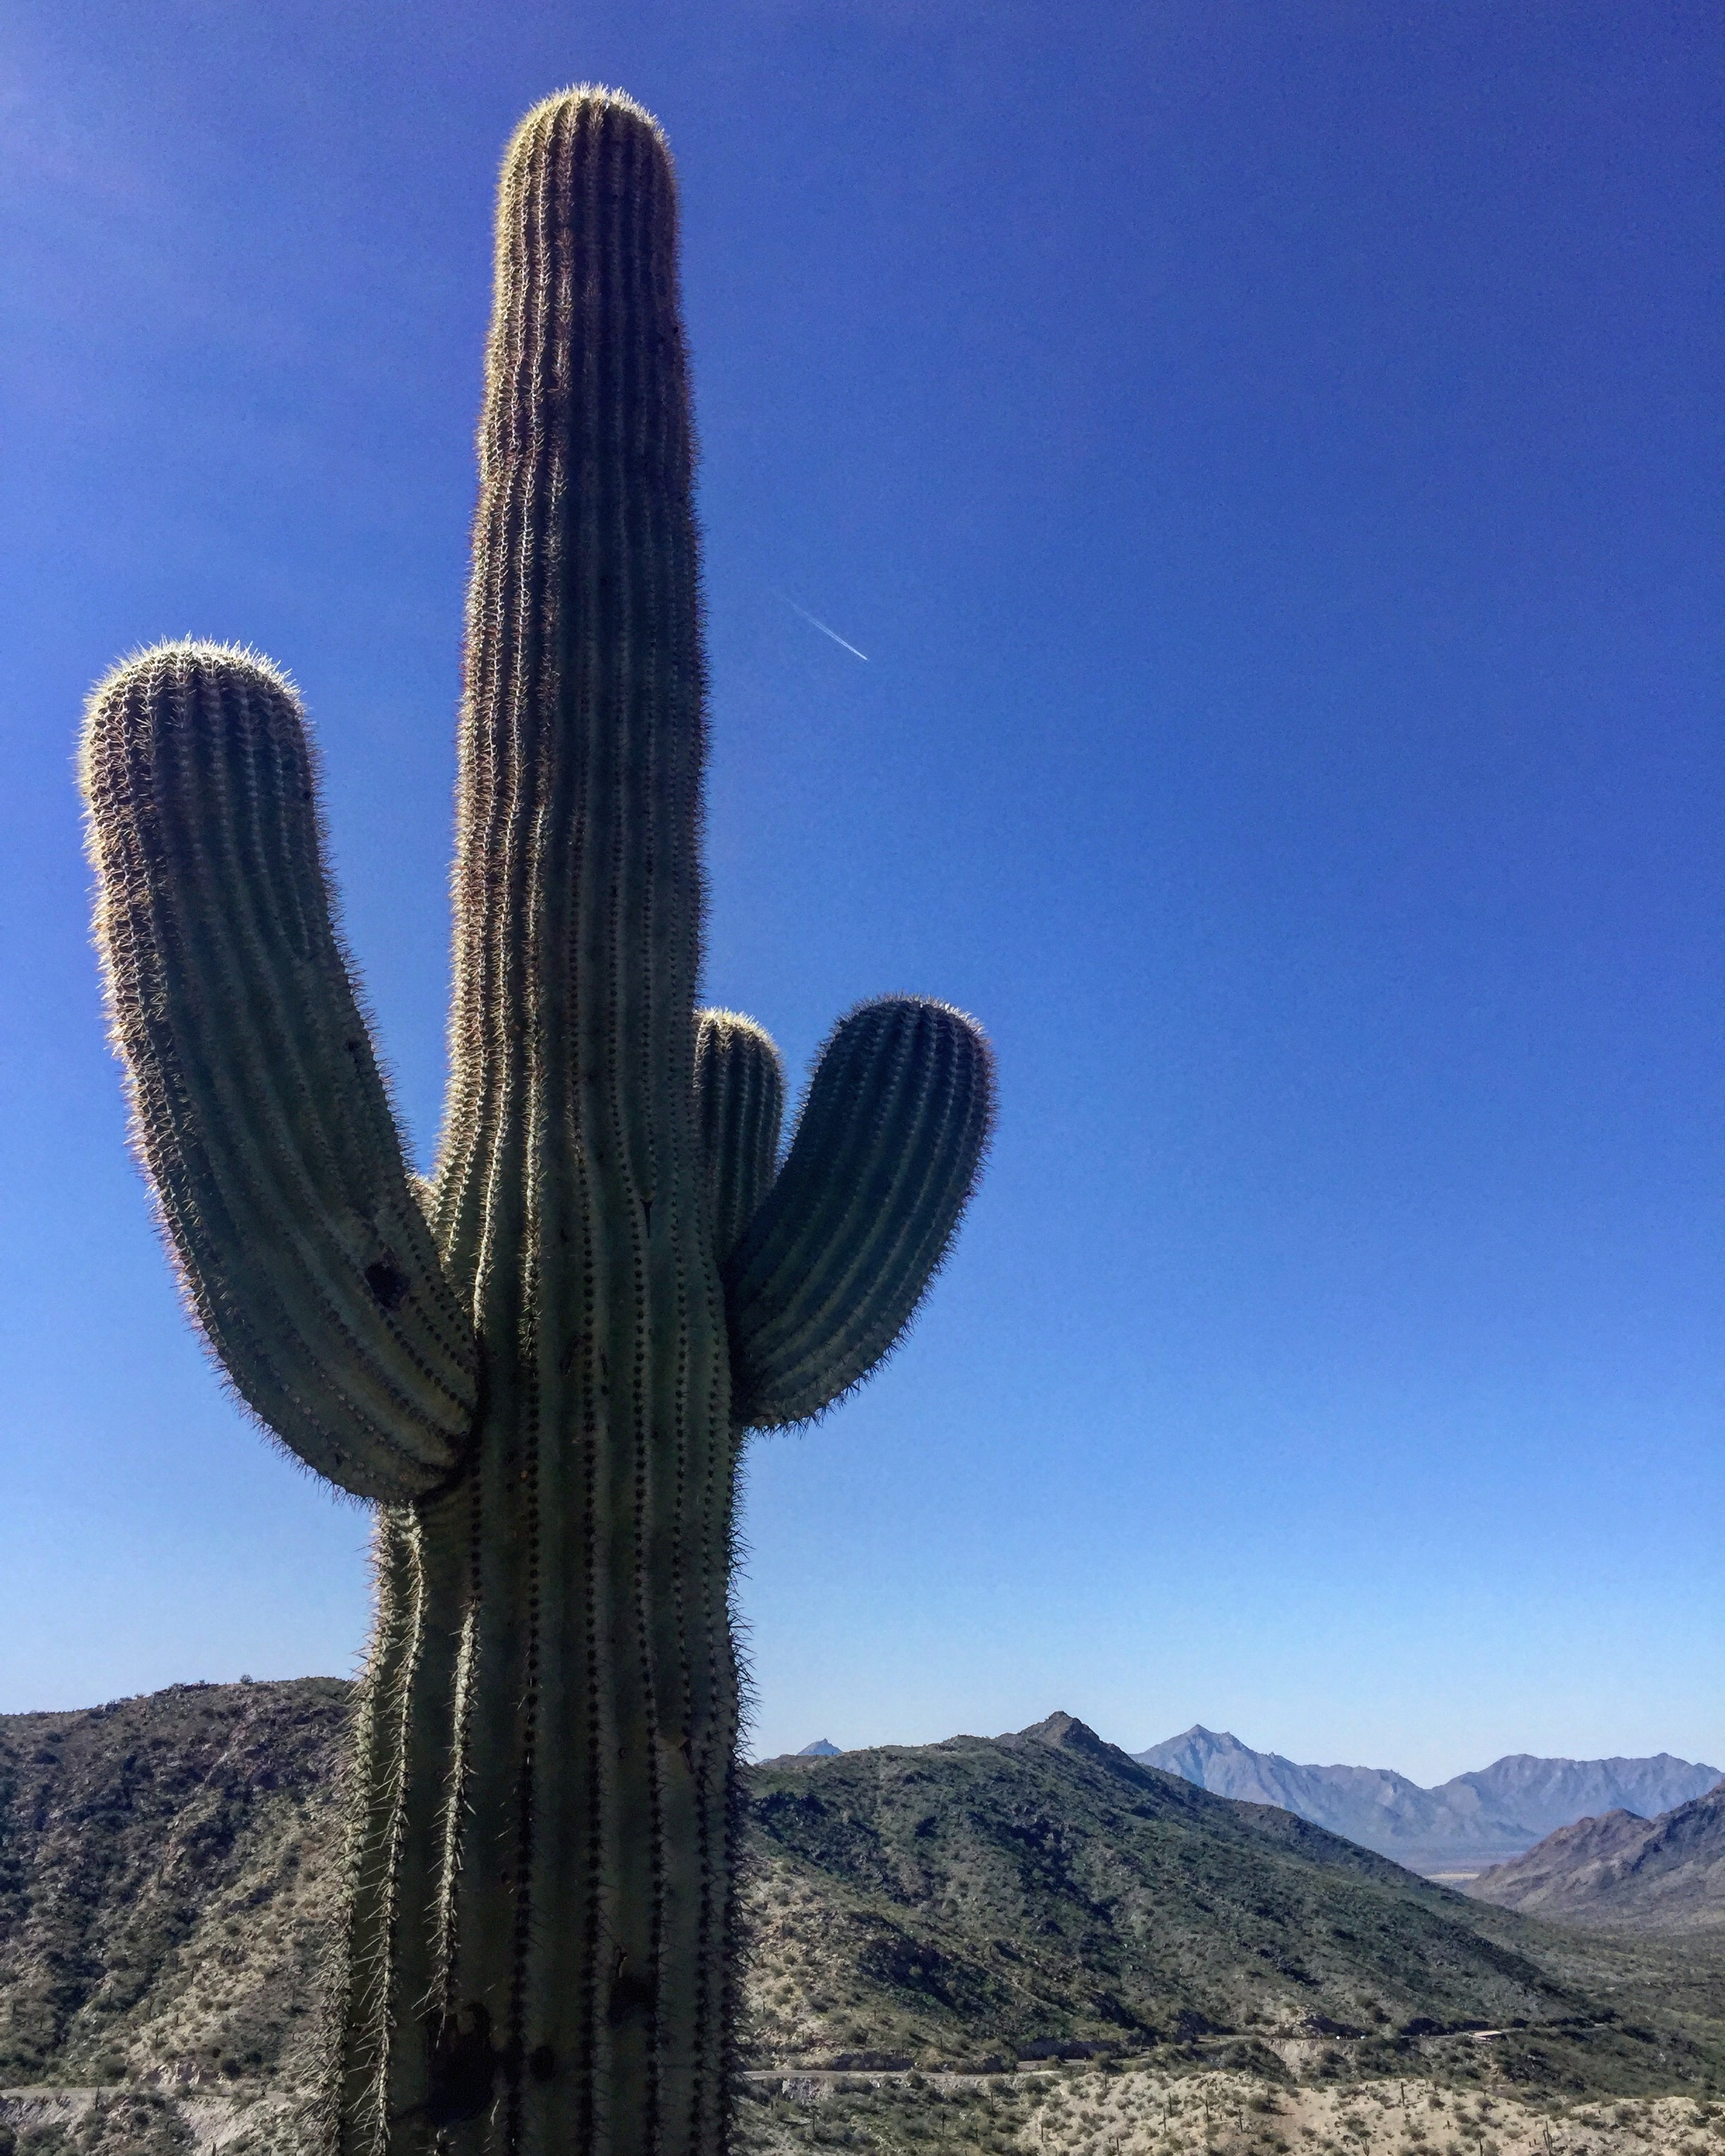 Phoenix February 2019 South Mountain 3.JPG